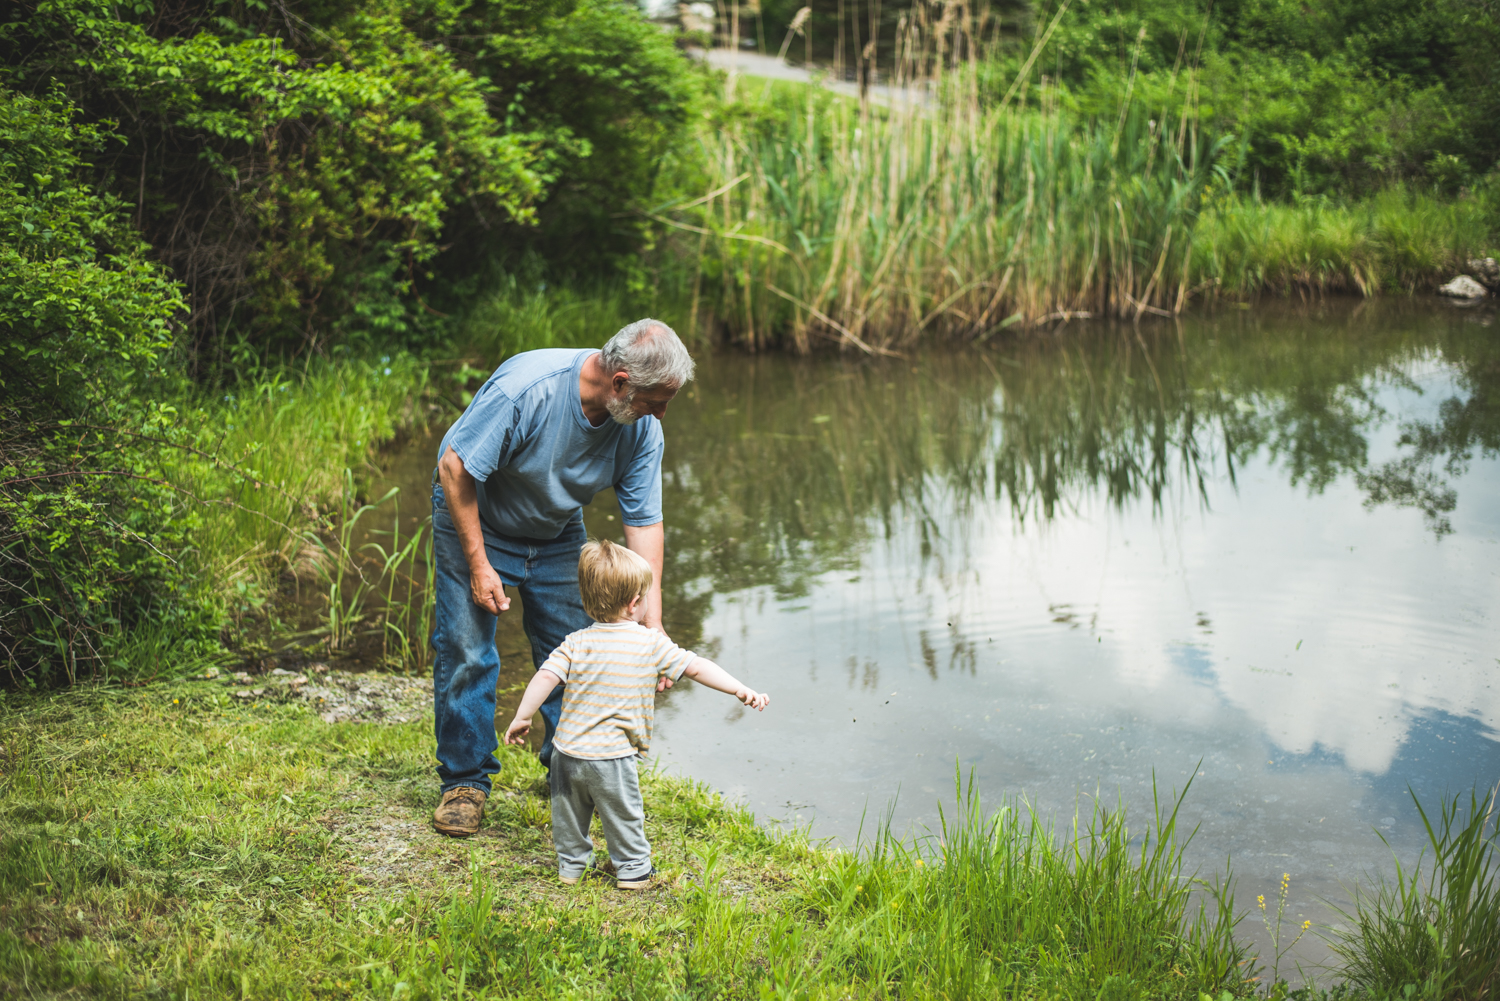 Logan and Pops throwing rocks in the pond.